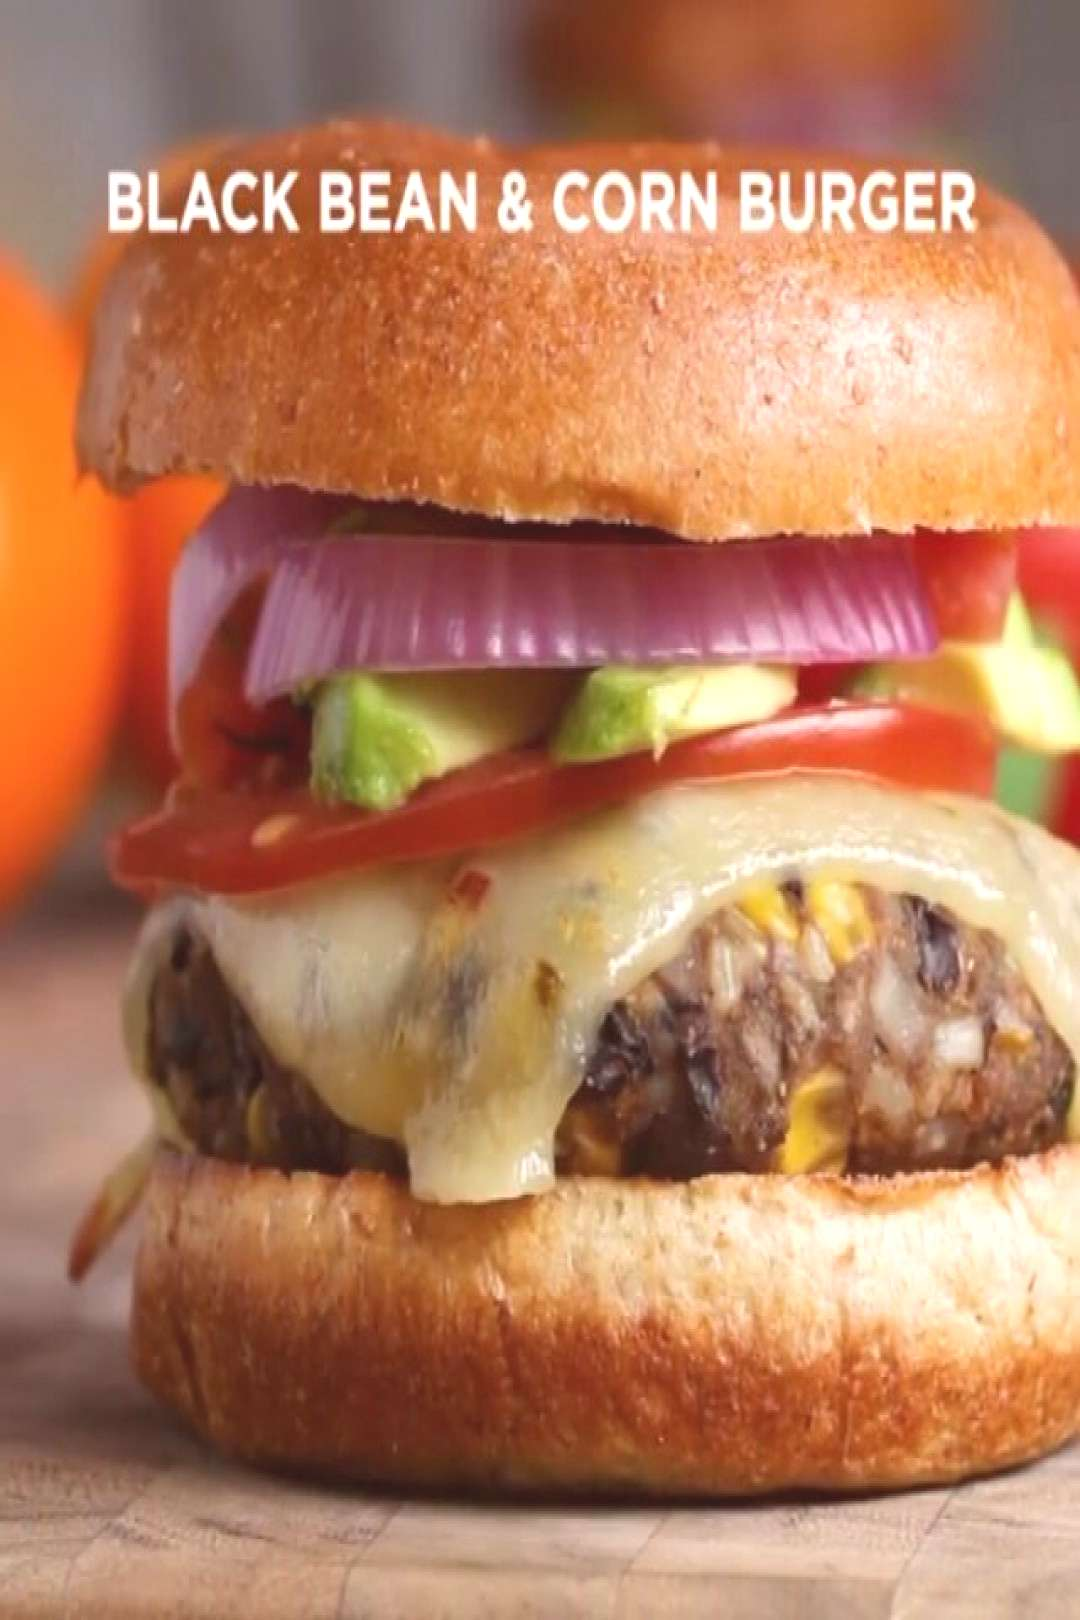 Black Bean amp Corn Burgers Full recipe below, send it to a friend